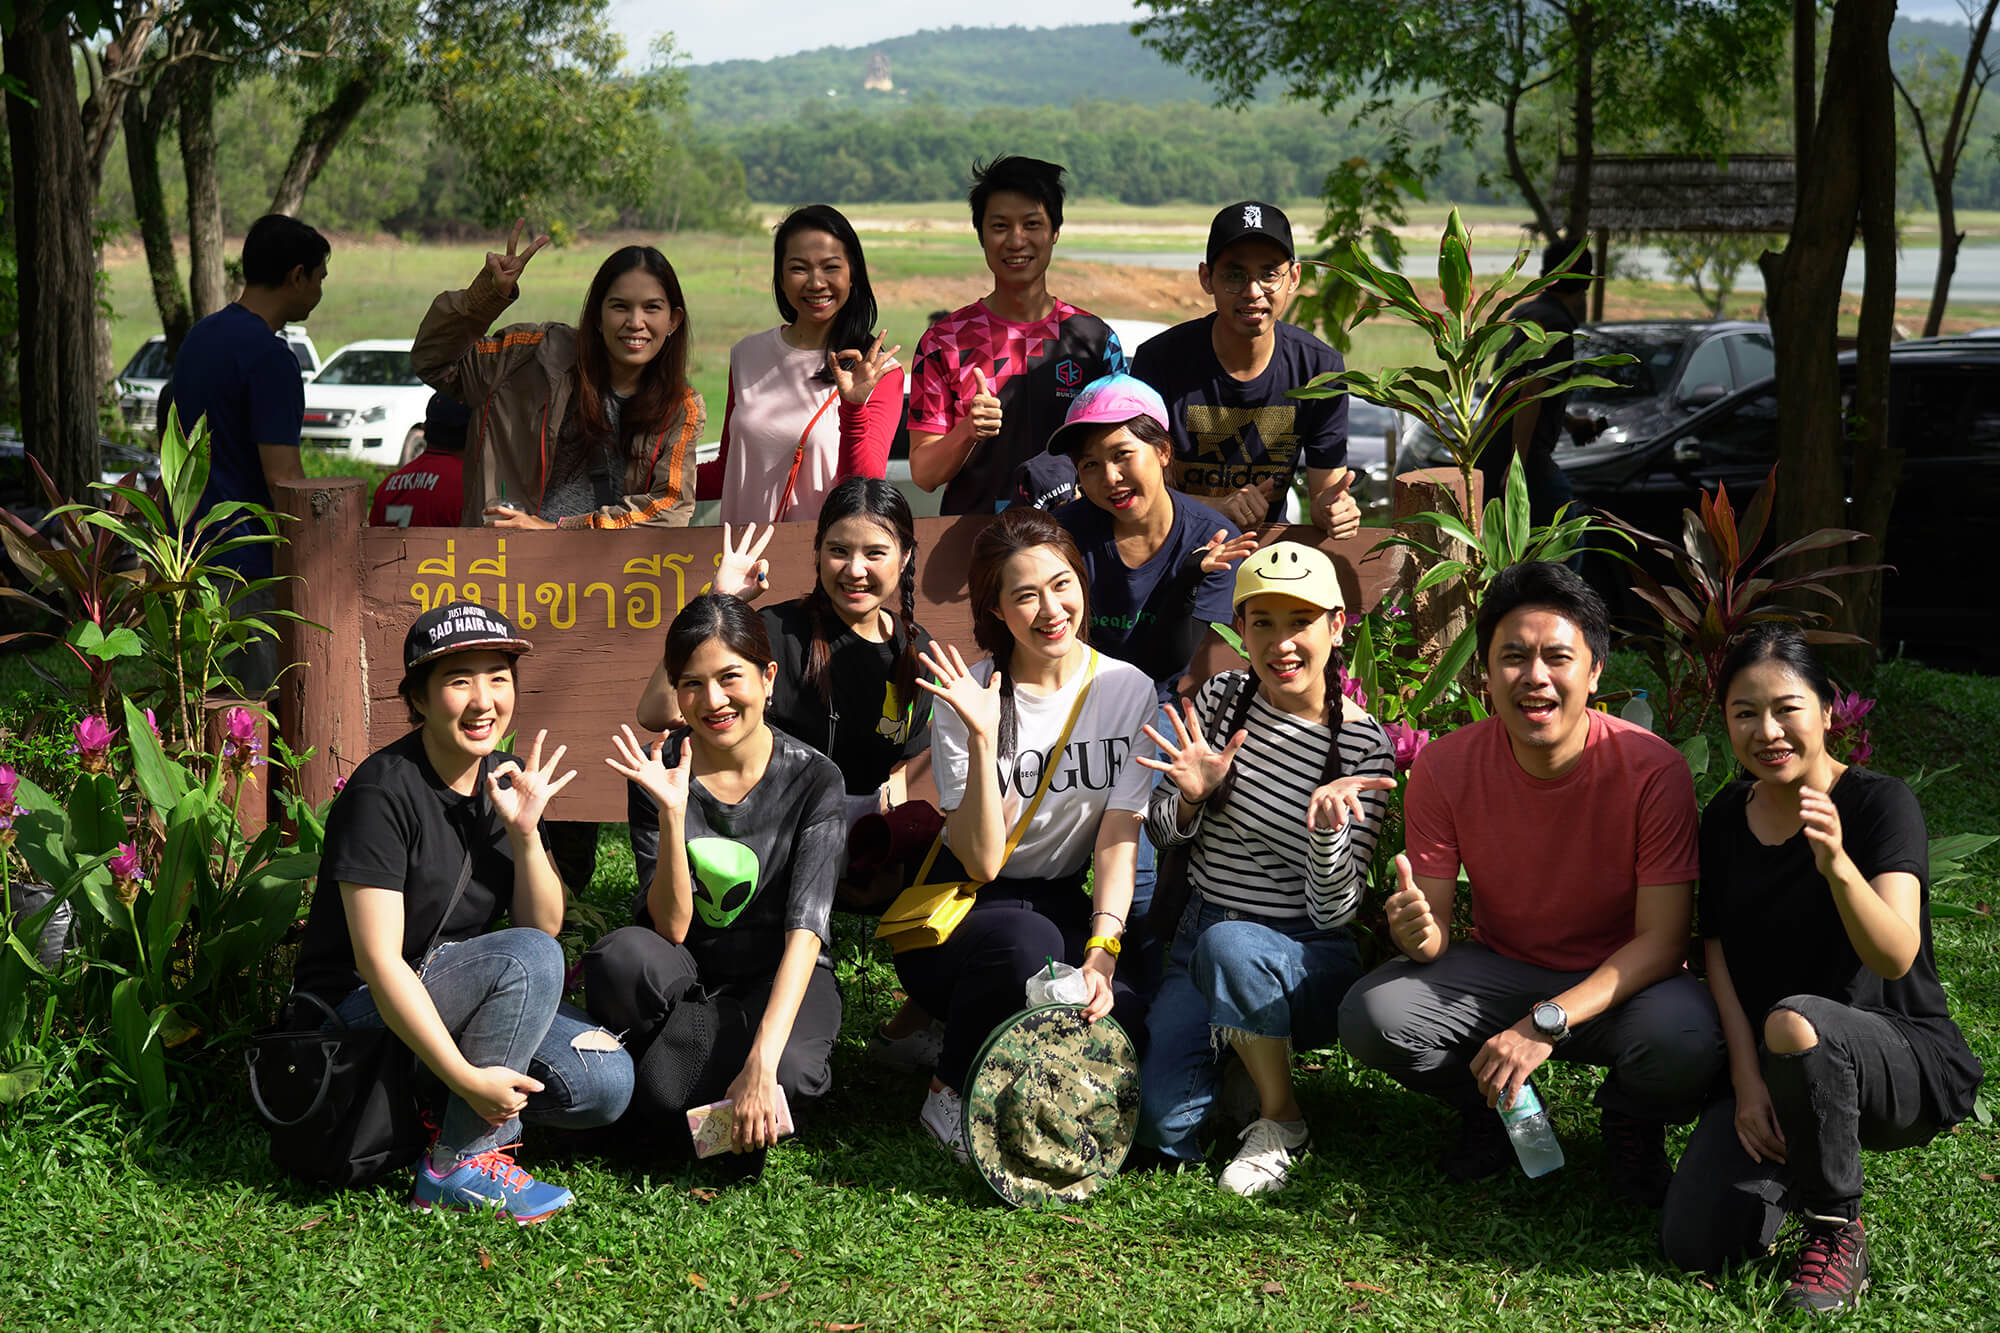 Reforesting together at Khao I-To